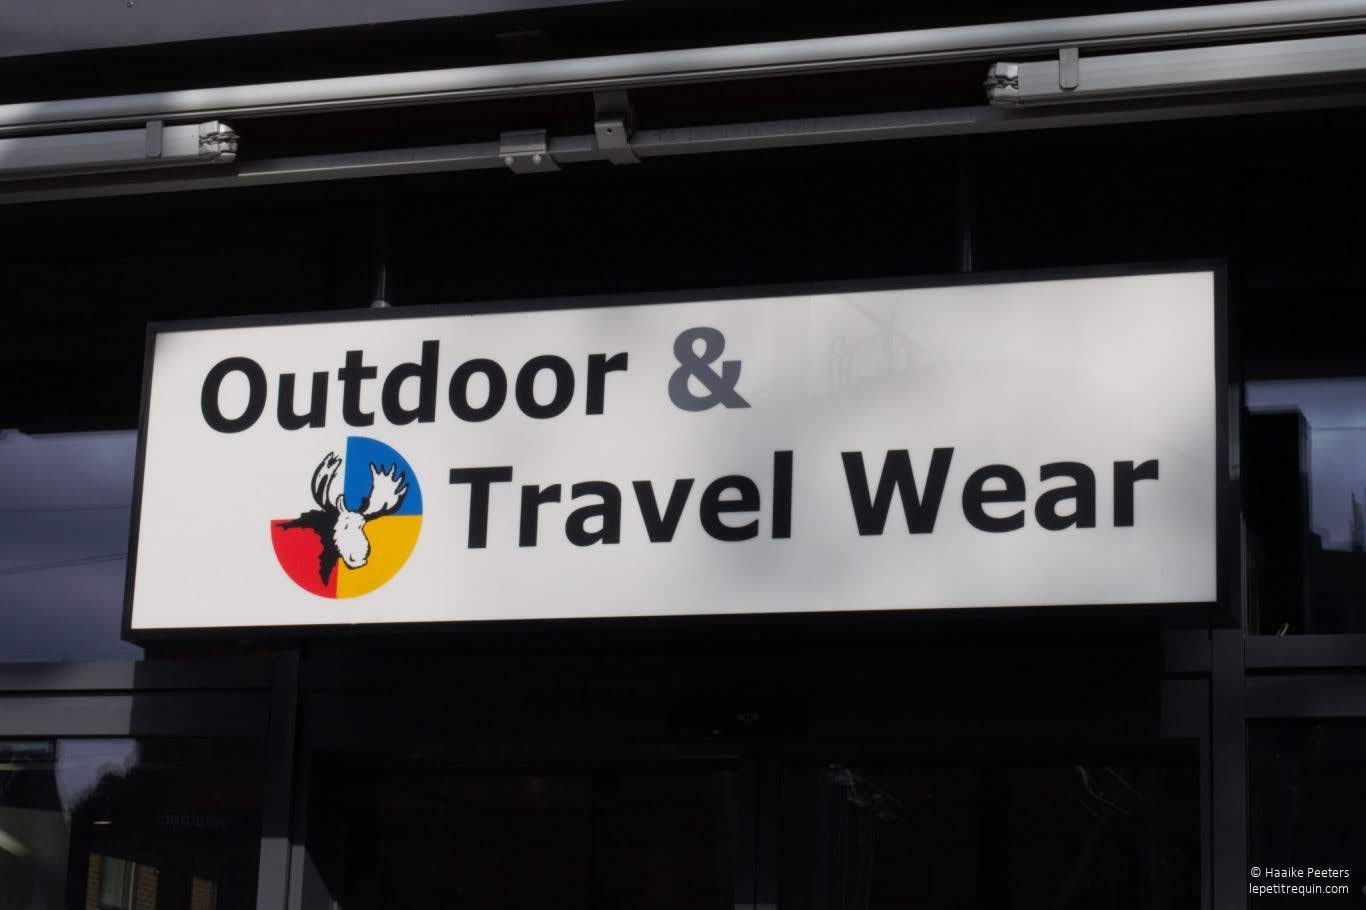 Outdoor & Travel Wear Winterthur (Le petit requin)